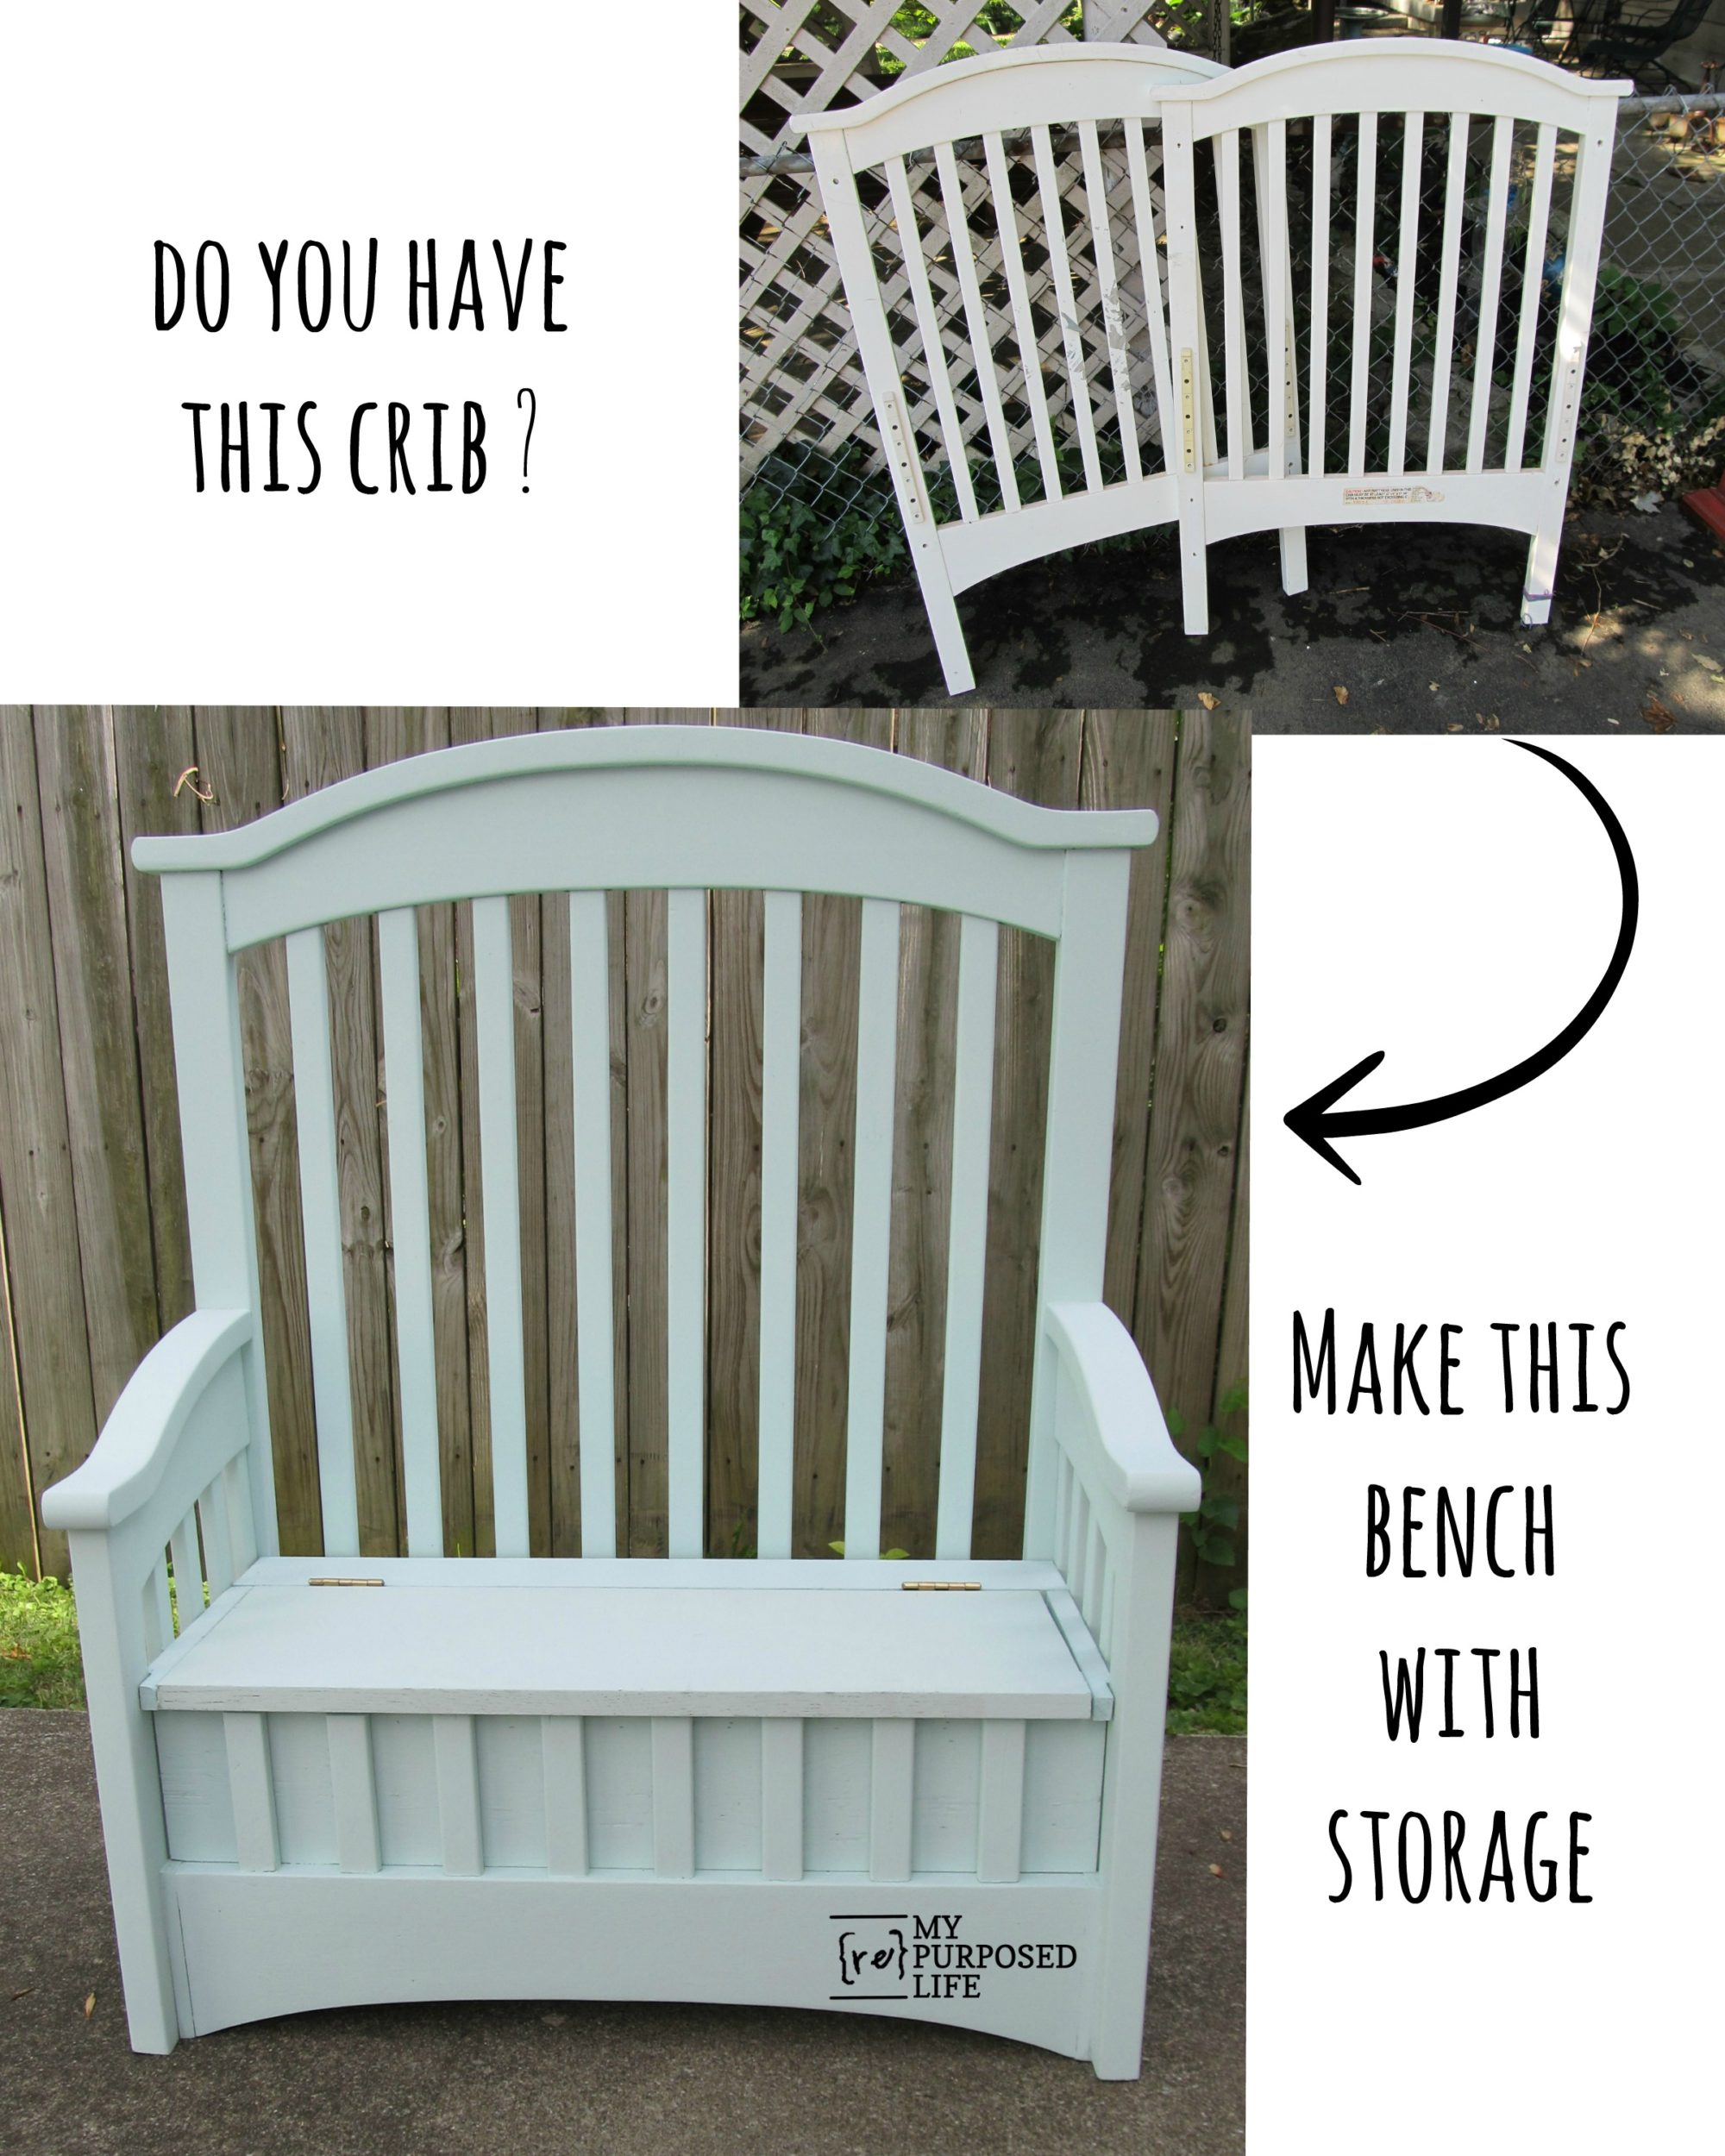 Repurposed Crib into Toy Box Bench - My Repurposed Life™